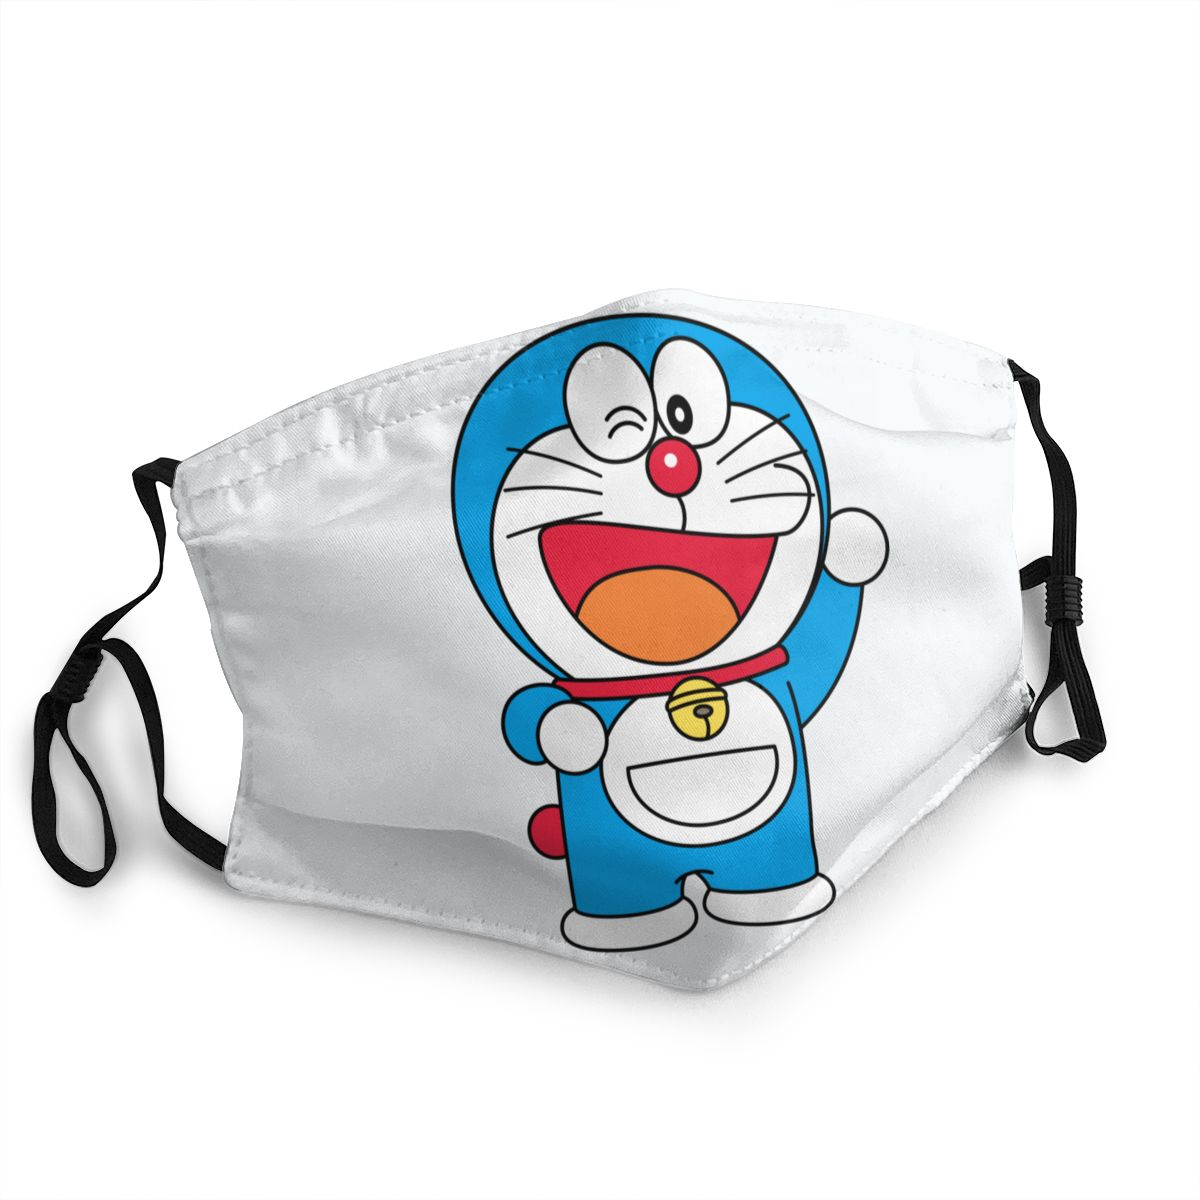 Greet Non-Disposable Face Mask Doraemon Anti Haze Dust Mask Protection Mask Respirator Mouth Muffle